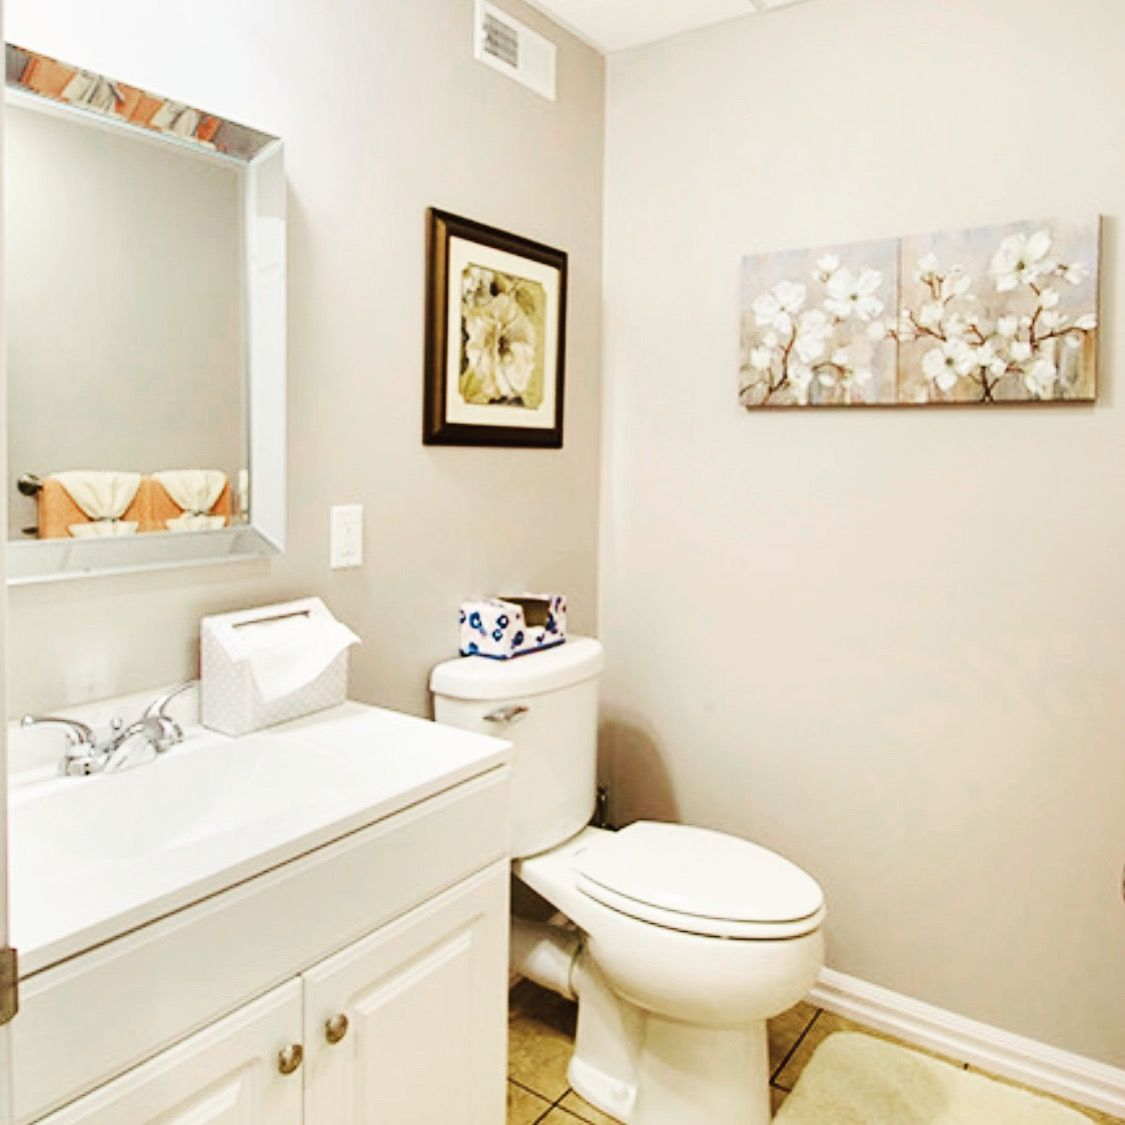 We Do Bathrooms Owens Corning Basement Finishing Systems